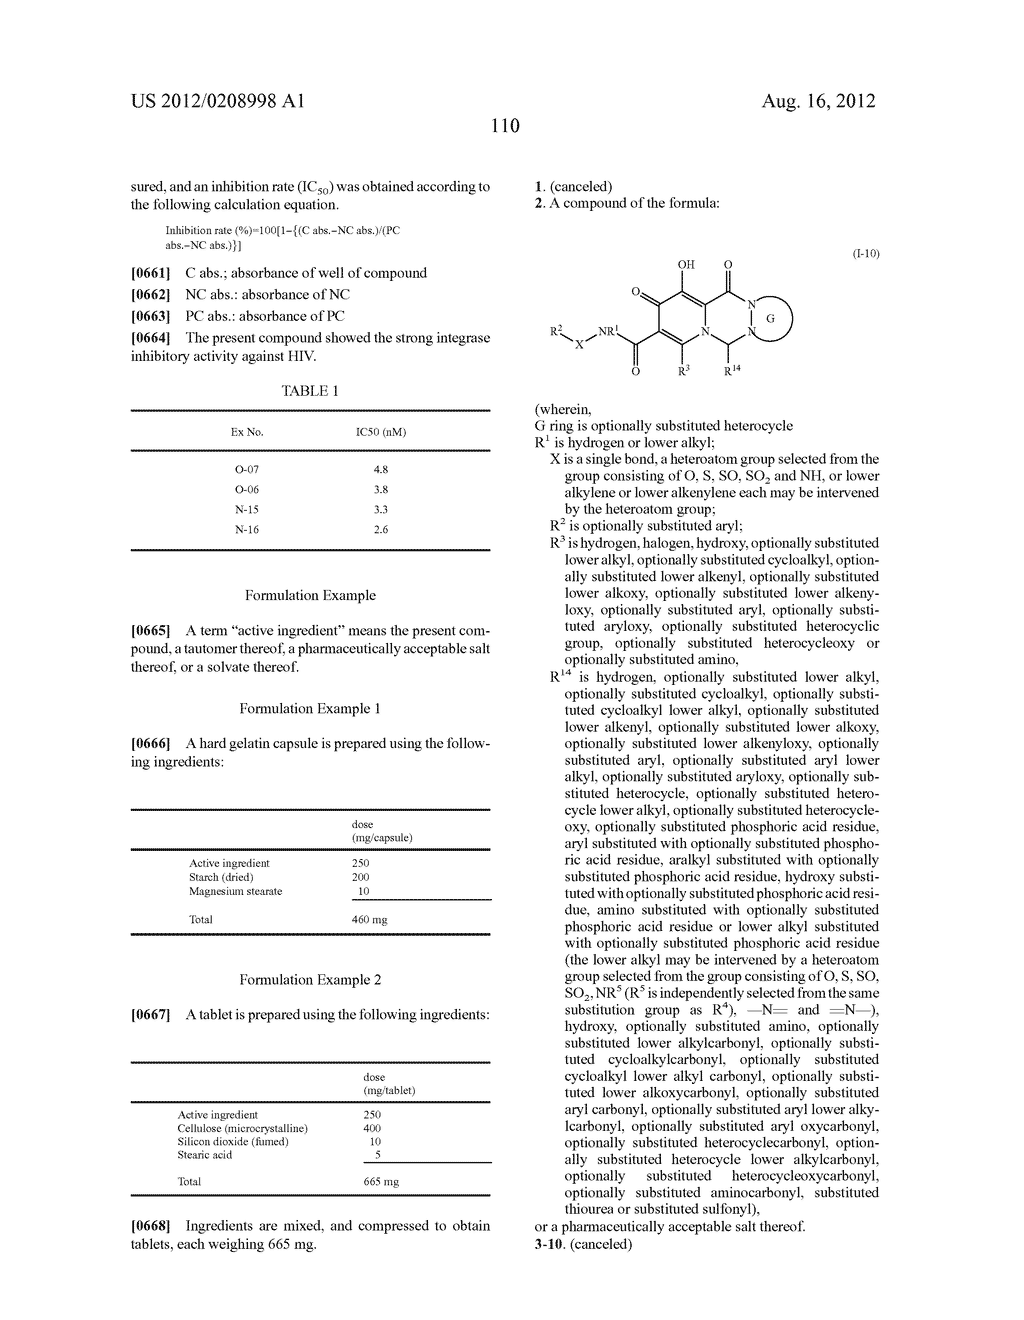 POLYCYCLIC CARBAMOYLPYRIDONE DERIVATIVE HAVING HIV INTEGRASE INHIBITORY     ACTIVITY - diagram, schematic, and image 111